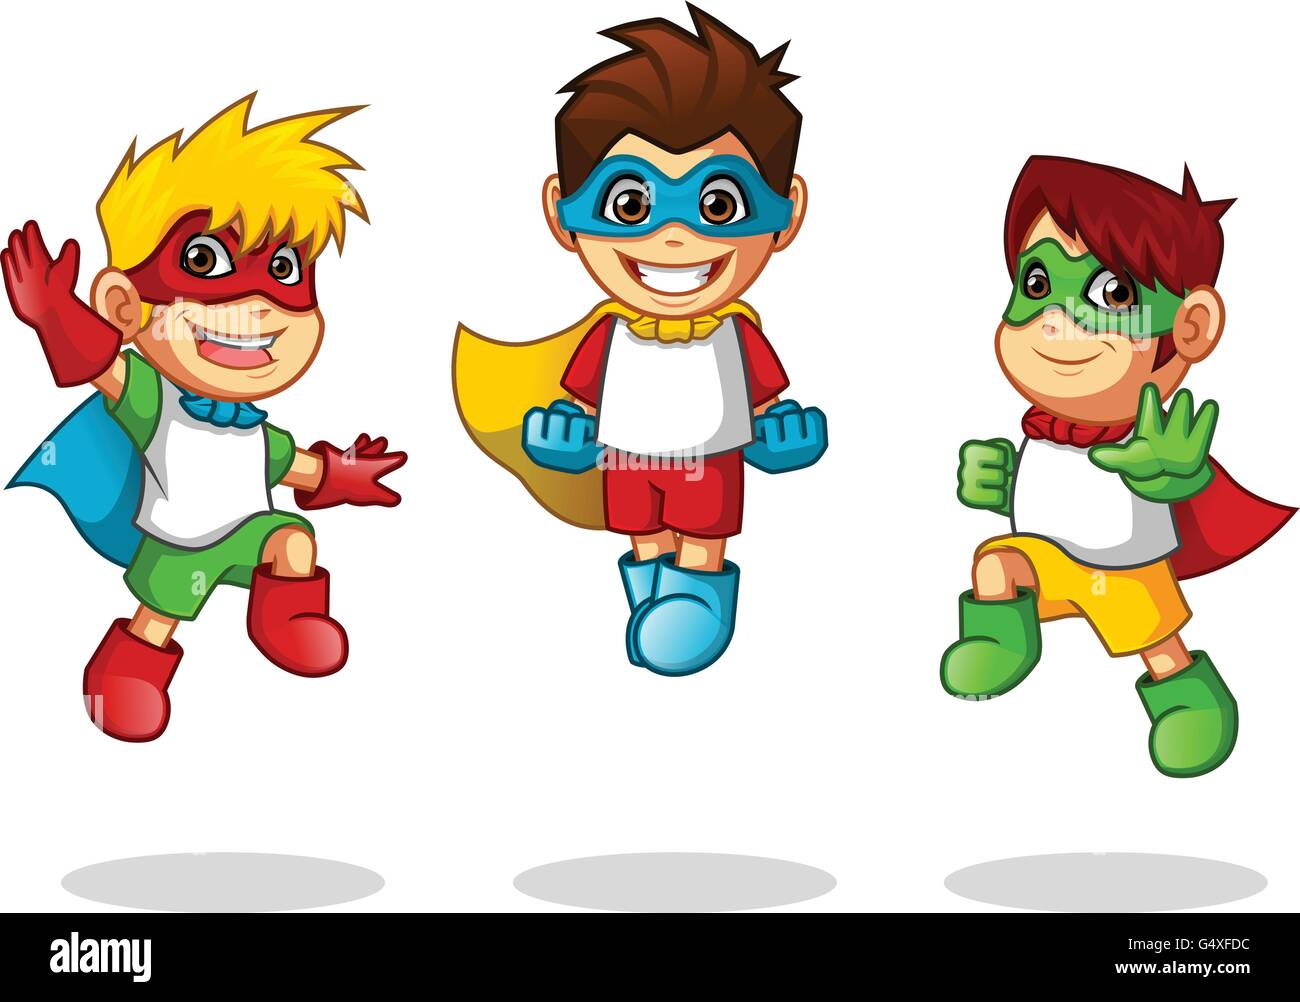 Super 4 Cartoon Characters : Kid super heroes with jumping flying pose cartoon